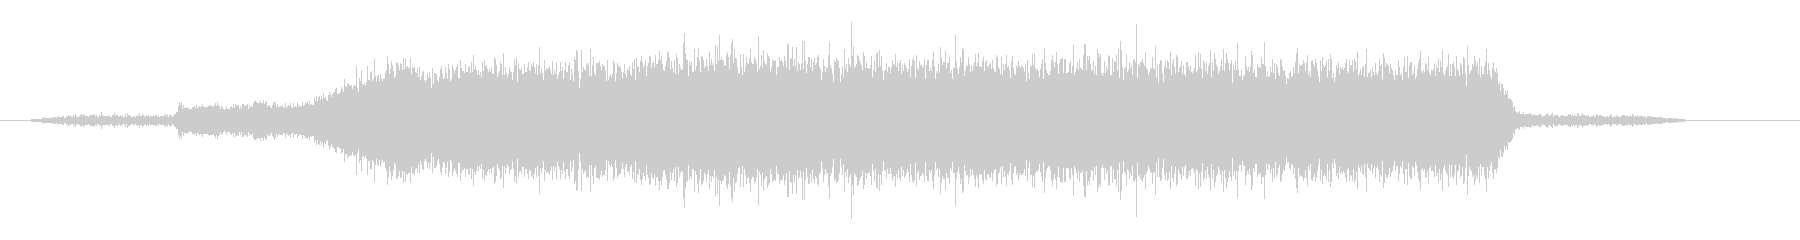 NEIGHBOR'S WATER PIPE WHISTLE's unreproduced waveform